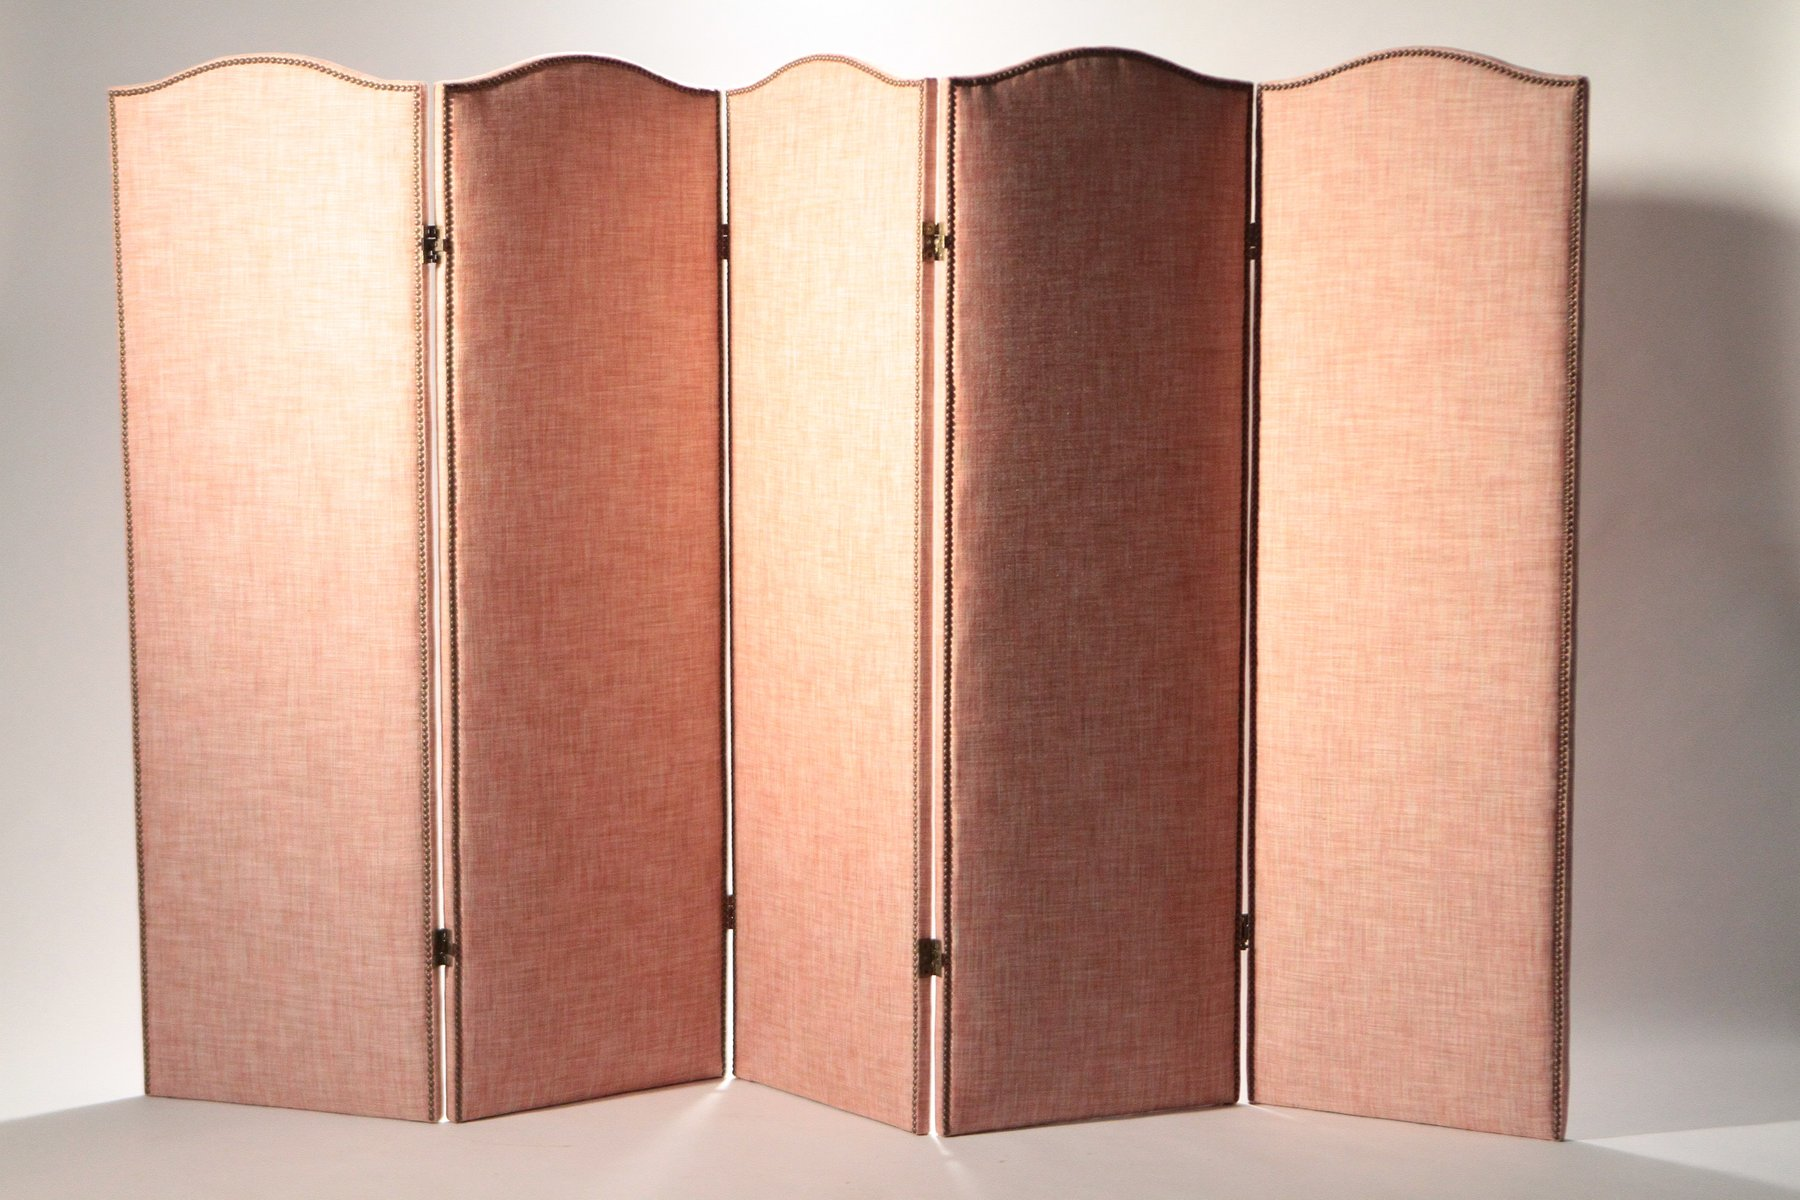 Folding Screen Vintage Upholstered Folding Screen 1920s For Sale At Pamono